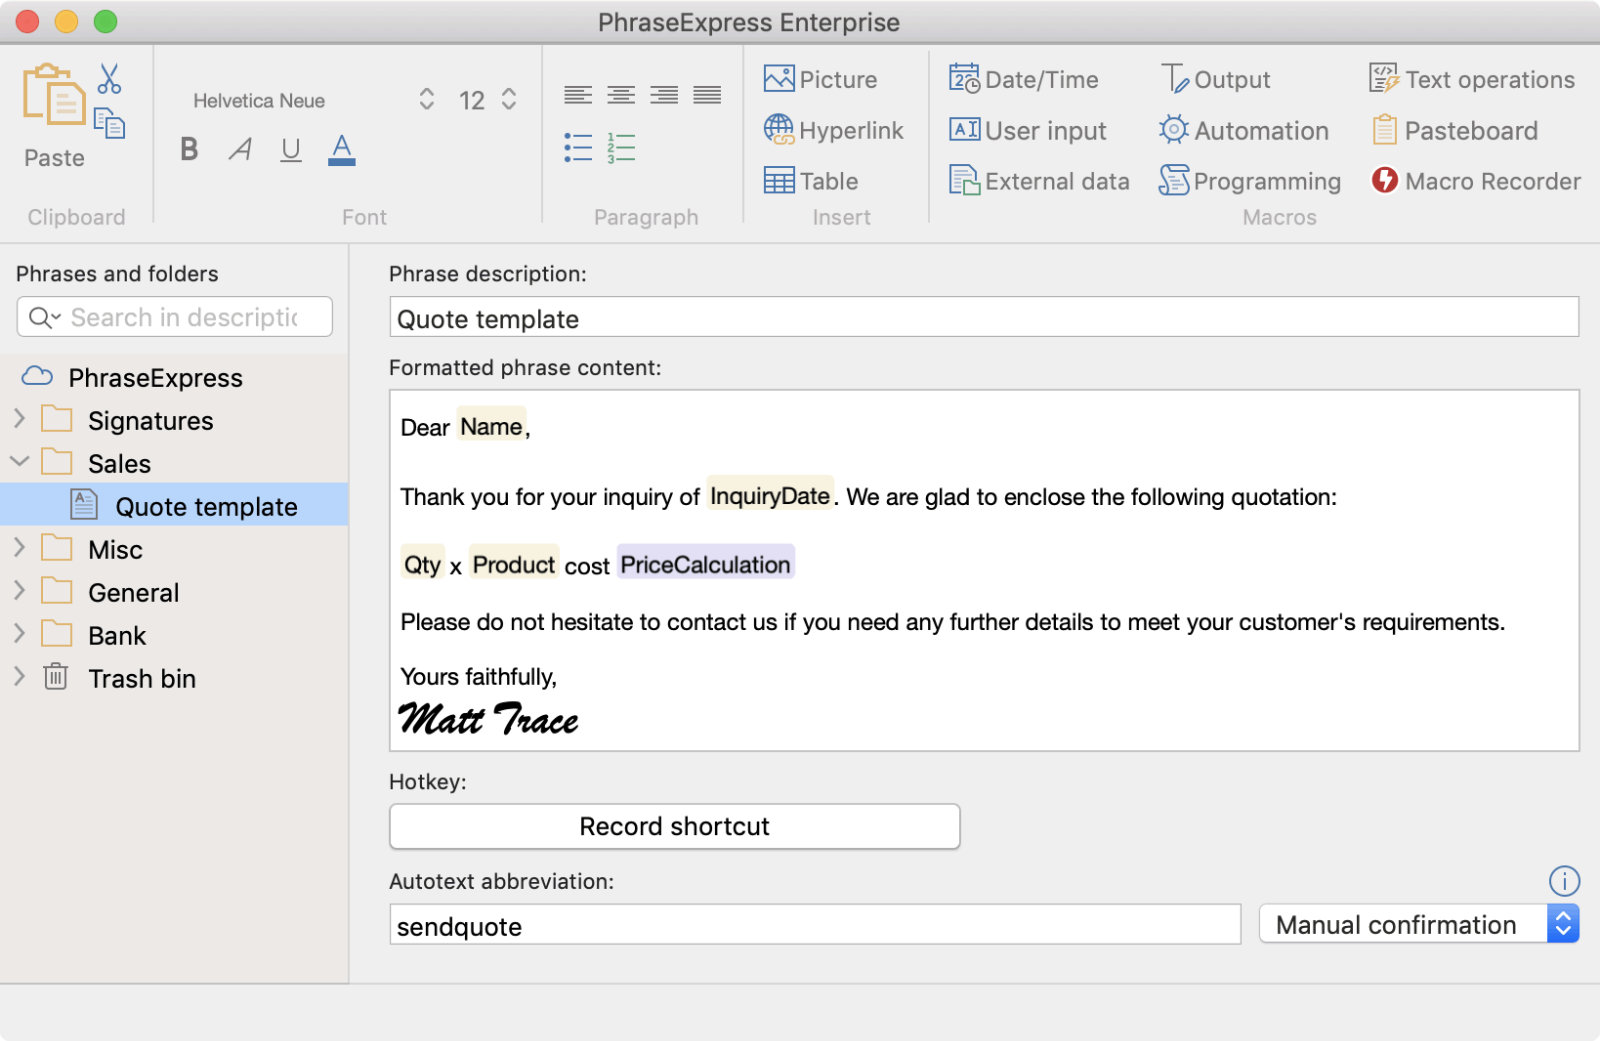 Compatible with PhraseExpress for Mac v3